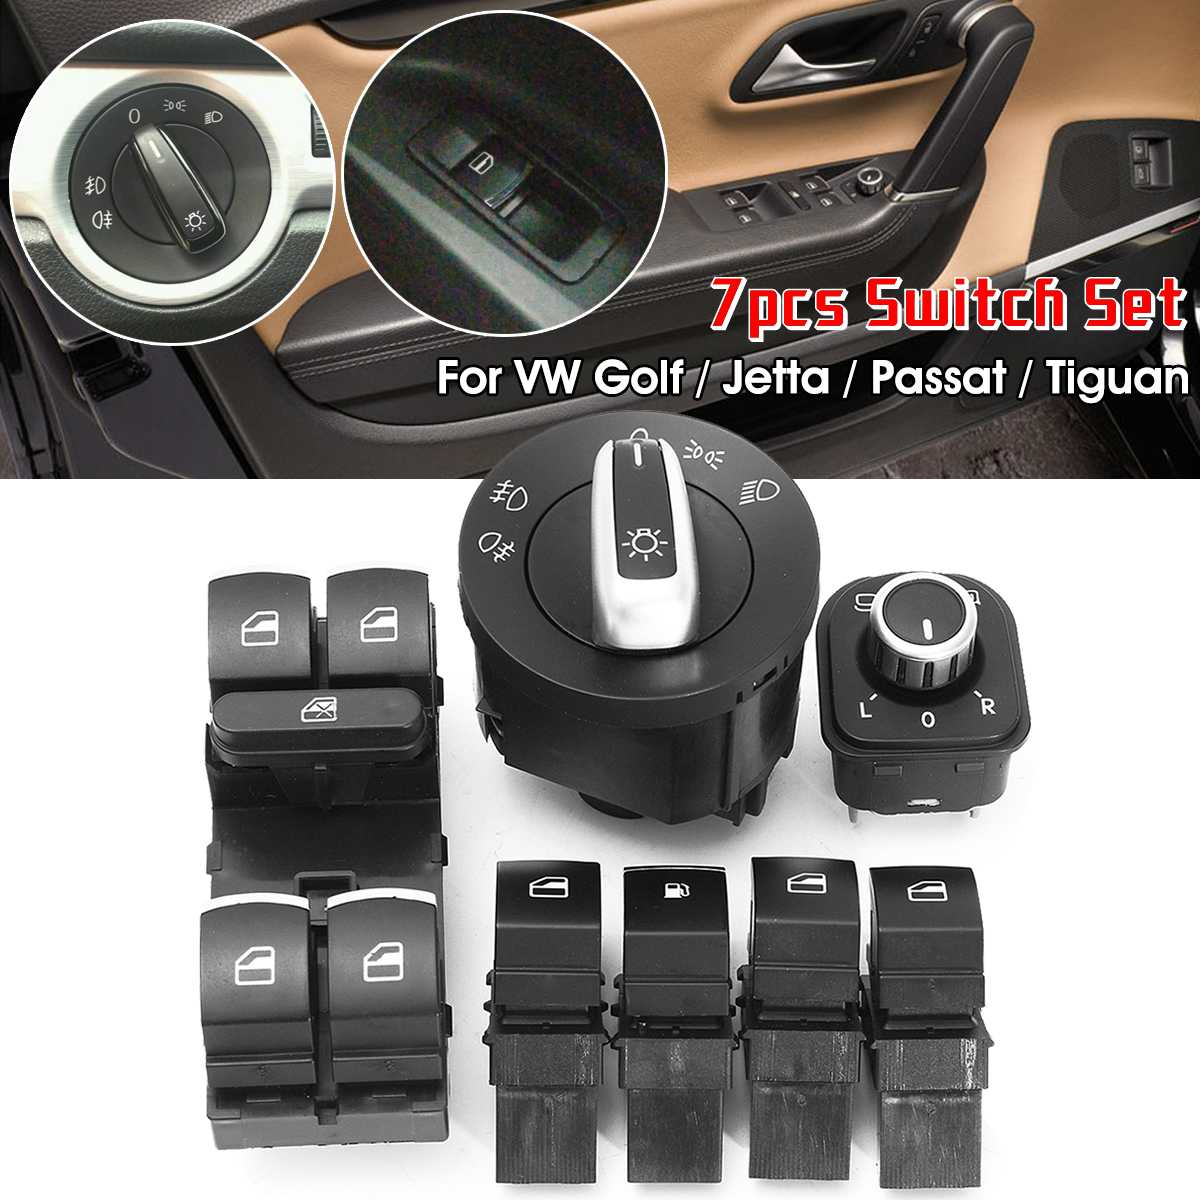 7pcs Window Mirror <font><b>Headlight</b></font> Control Switch Kit 5ND 941 431 A 5ND959857 For <font><b>VW</b></font> <font><b>Golf</b></font> MK5 MK6 MK7 Jetta <font><b>MK3</b></font> MK4 Passat B6 B7 image